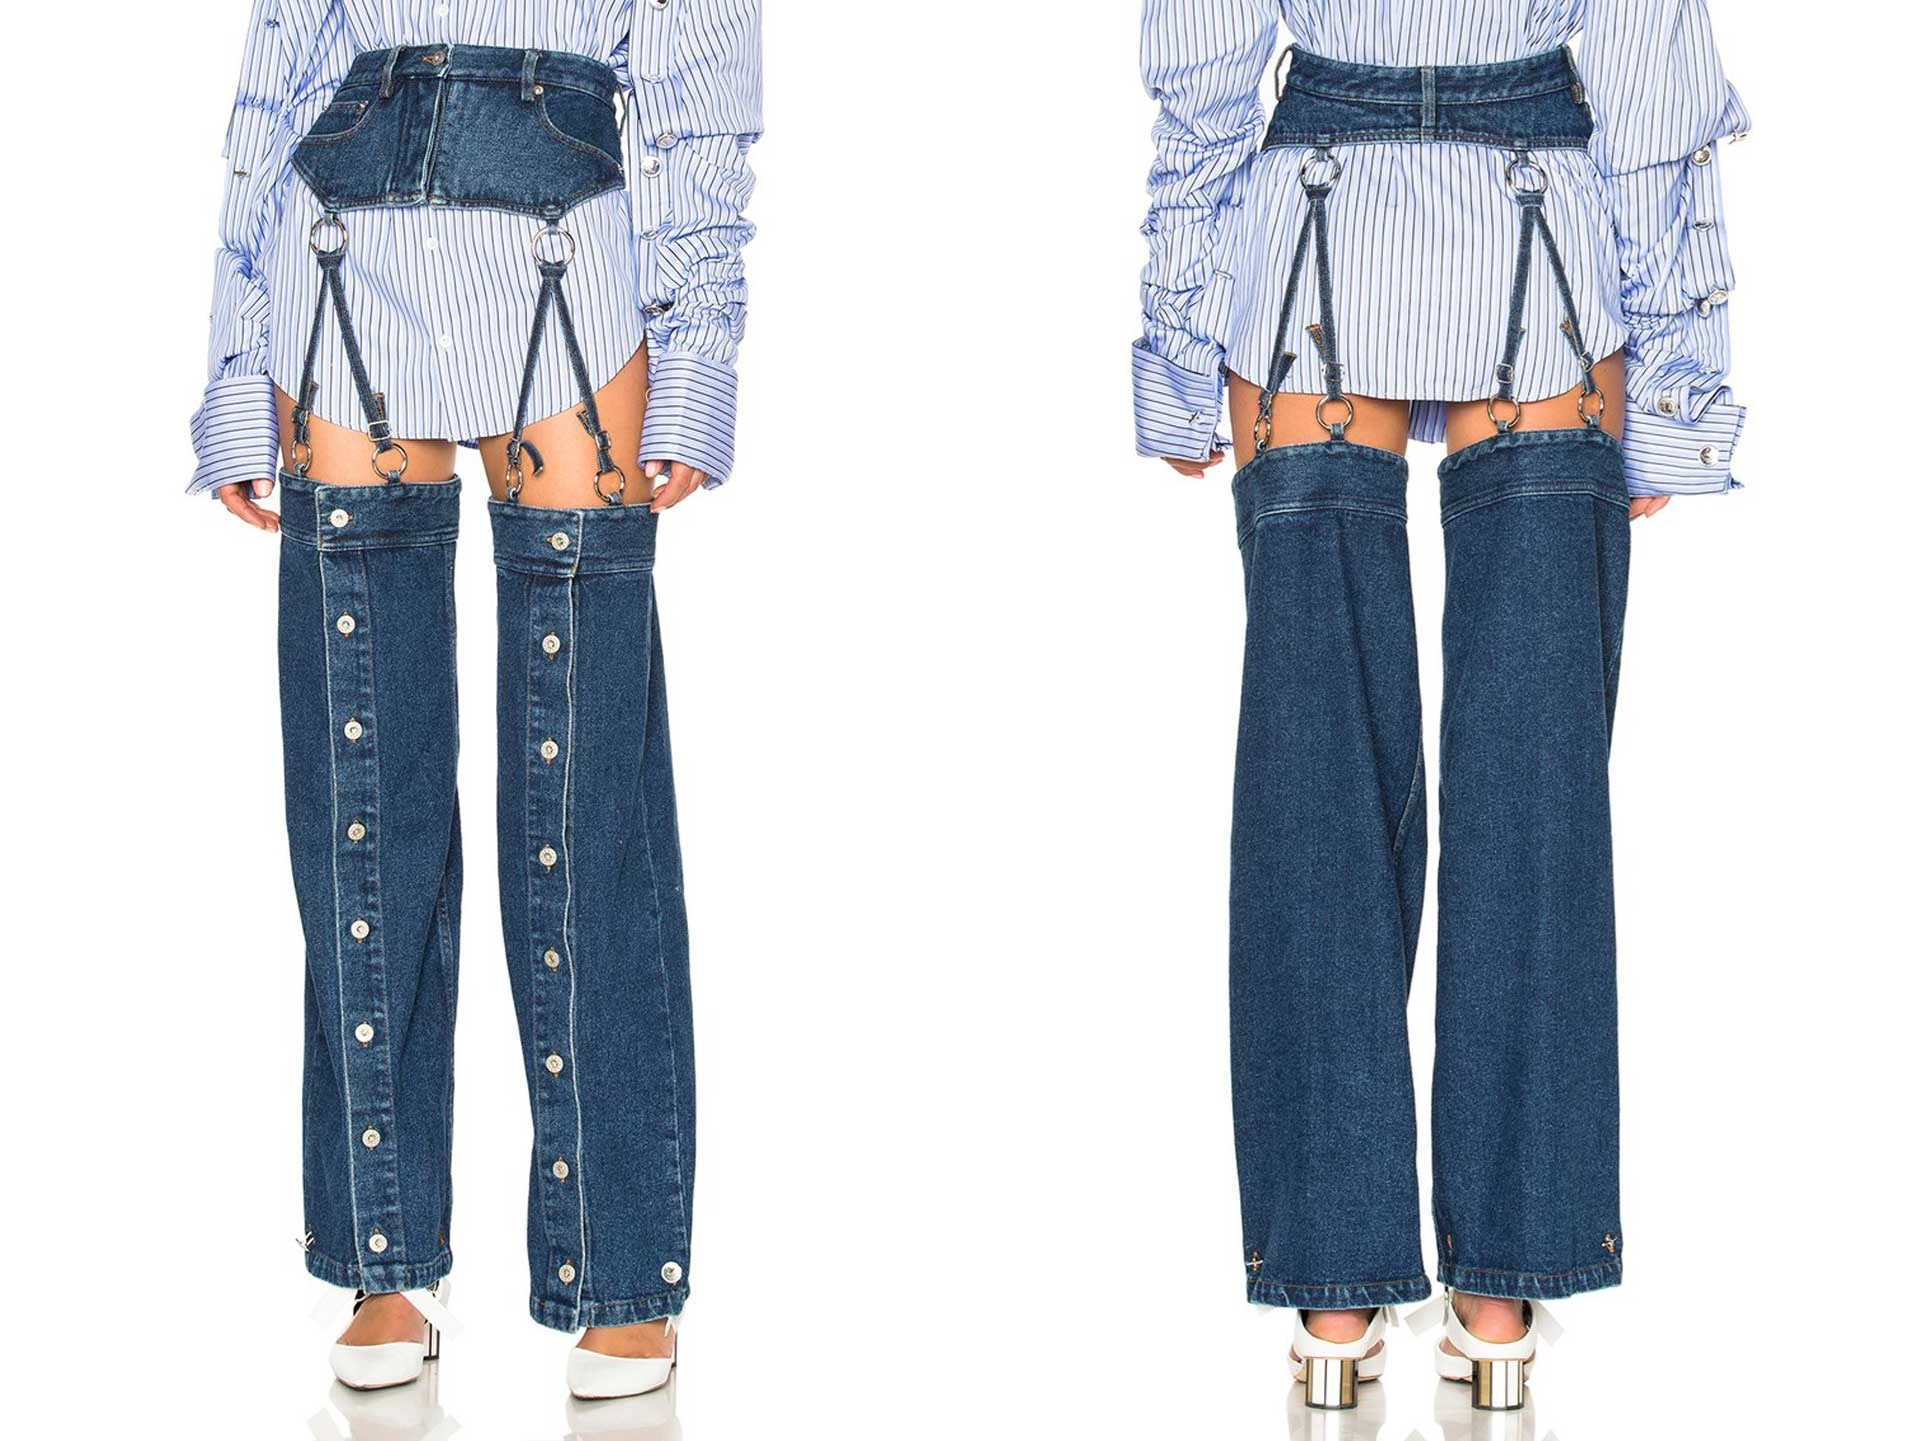 """It's officially happened: Someone designed a pair of jeans that are actually missing the crotch area. Why? 'Cause fashion is cooked. Fortunately, for those looking to rep the ~airy~ trend, this style by [Y/Project](http://www.fwrd.com/product-y-project-detachable-button-down-pants-in-washed-blue/YPRF-WJ4/